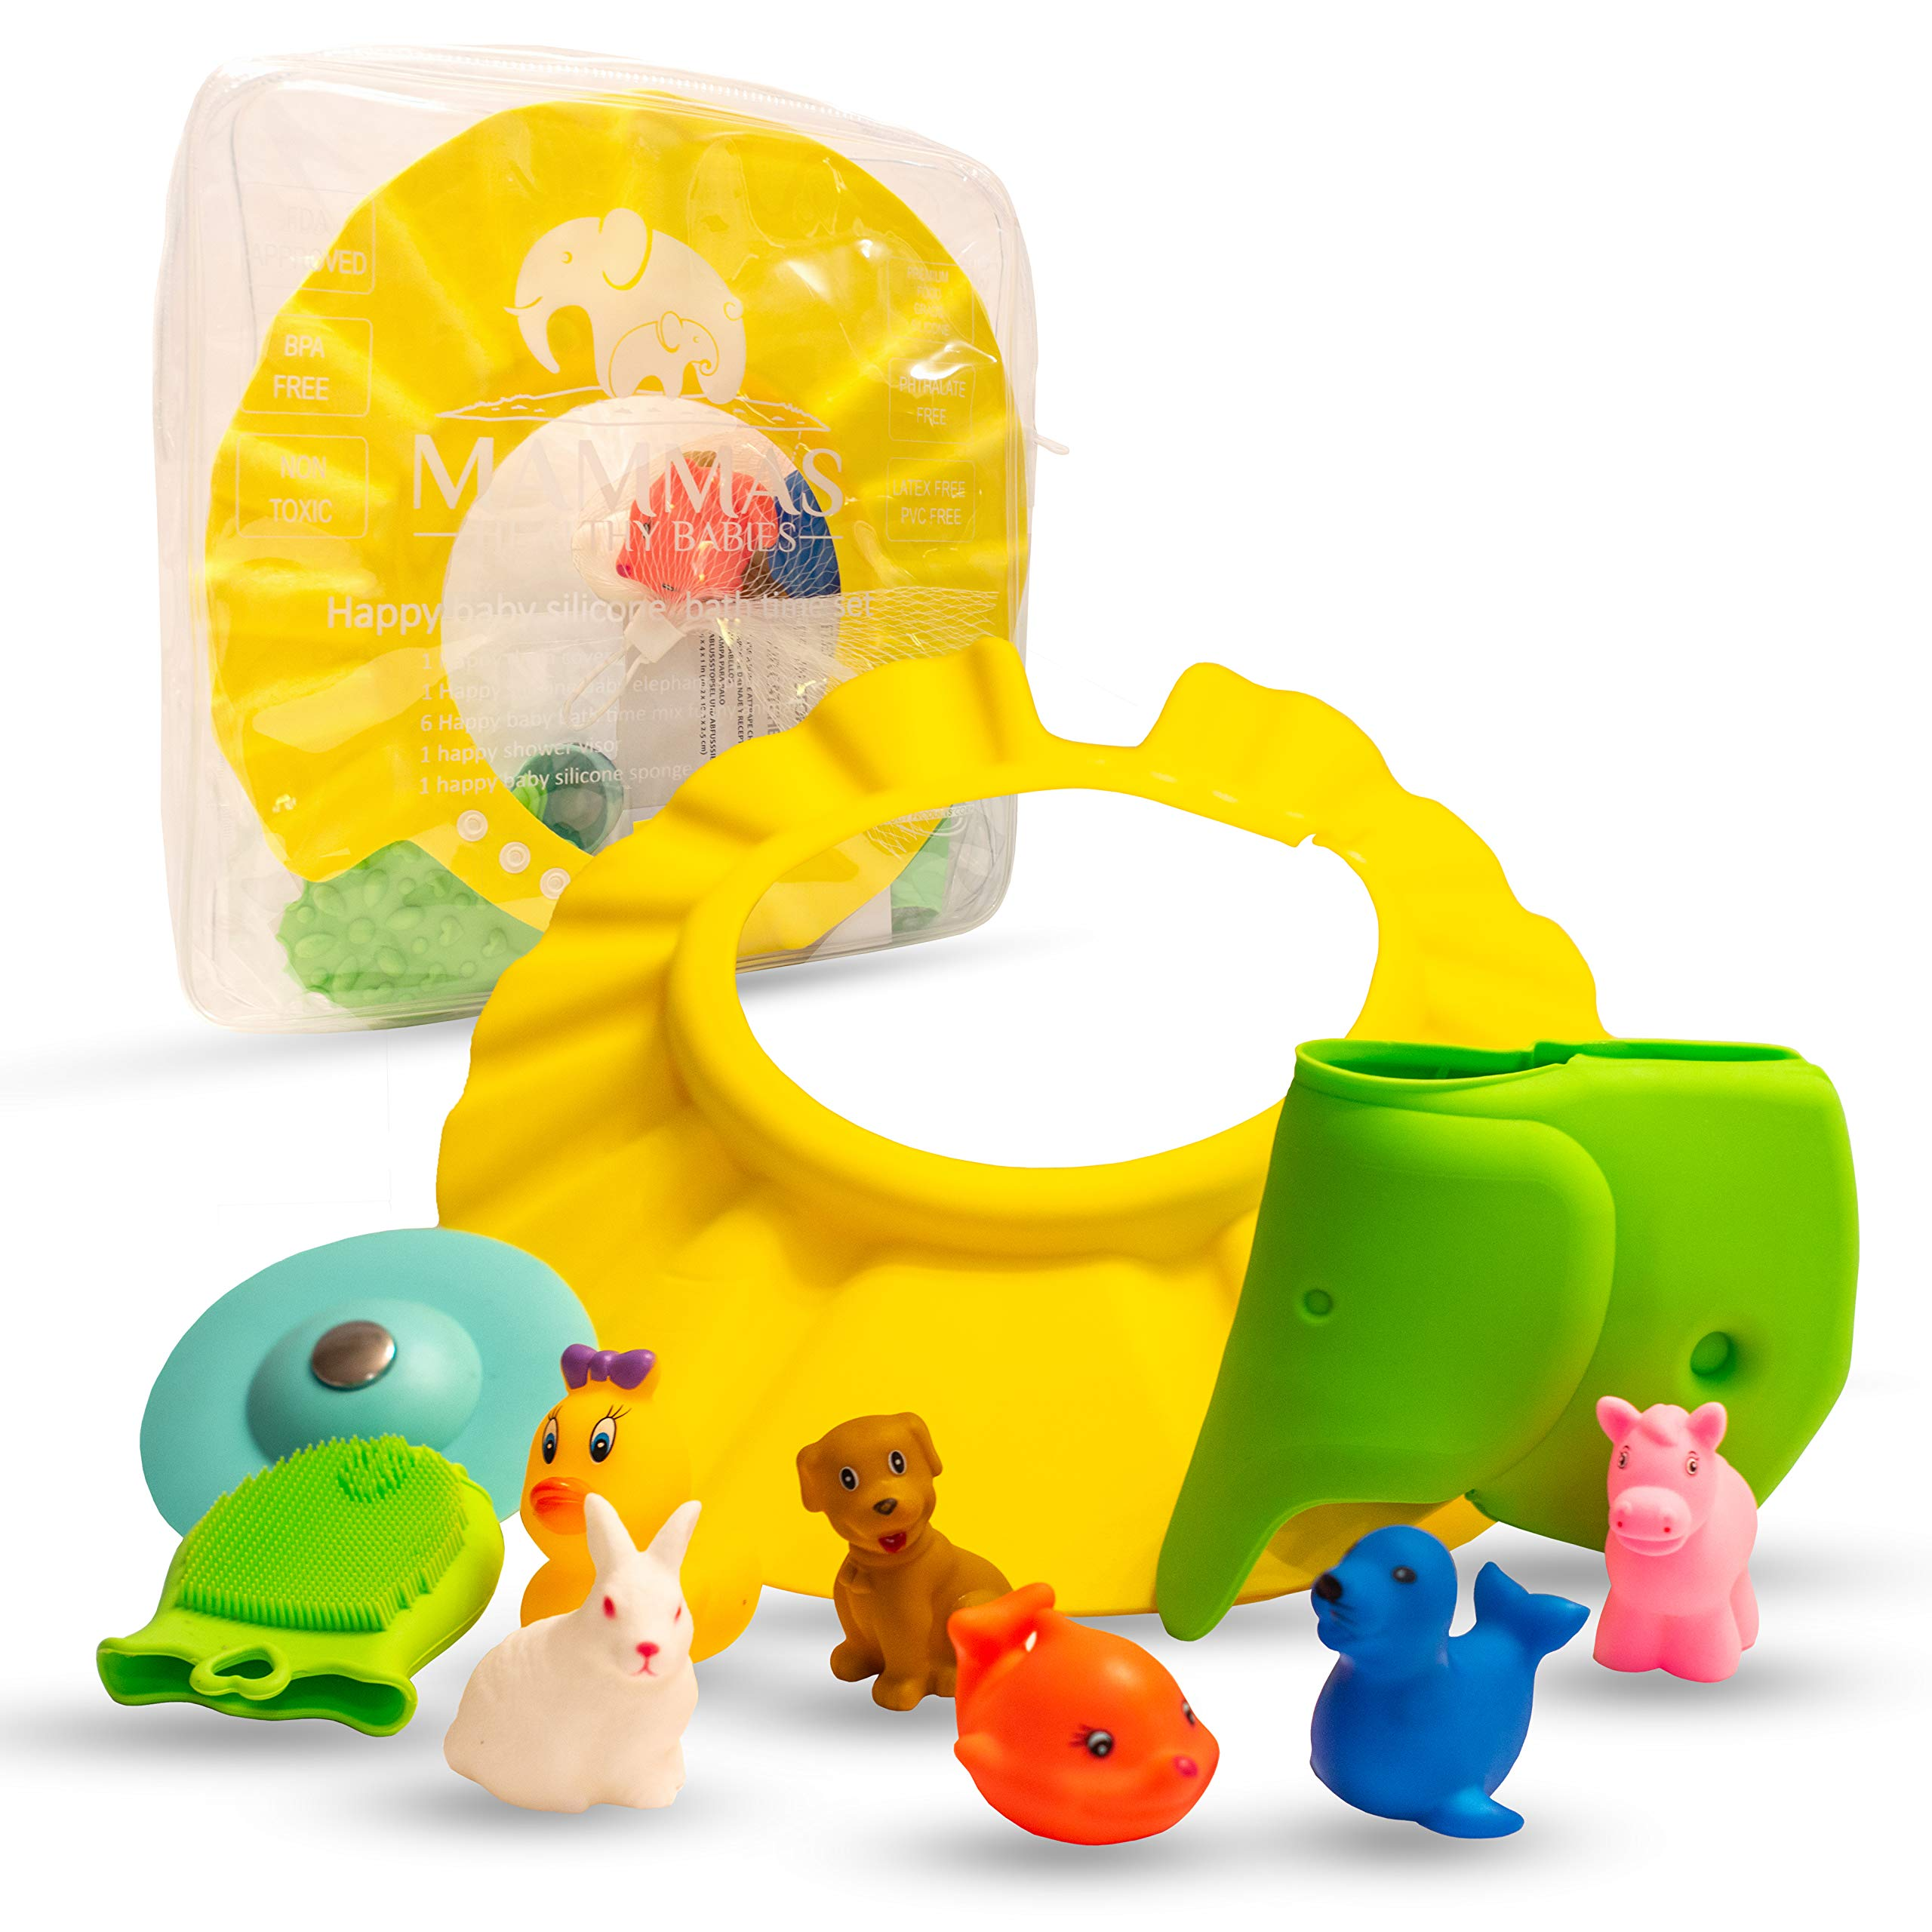 Baby Shower Gift Set for Bathtime - Fun and Vibrant 10 Pc Gifts; 6 Bath Toys, Bathing Cap, Spout Cover, Drain Cover, Organic Silicone Sponge and Case